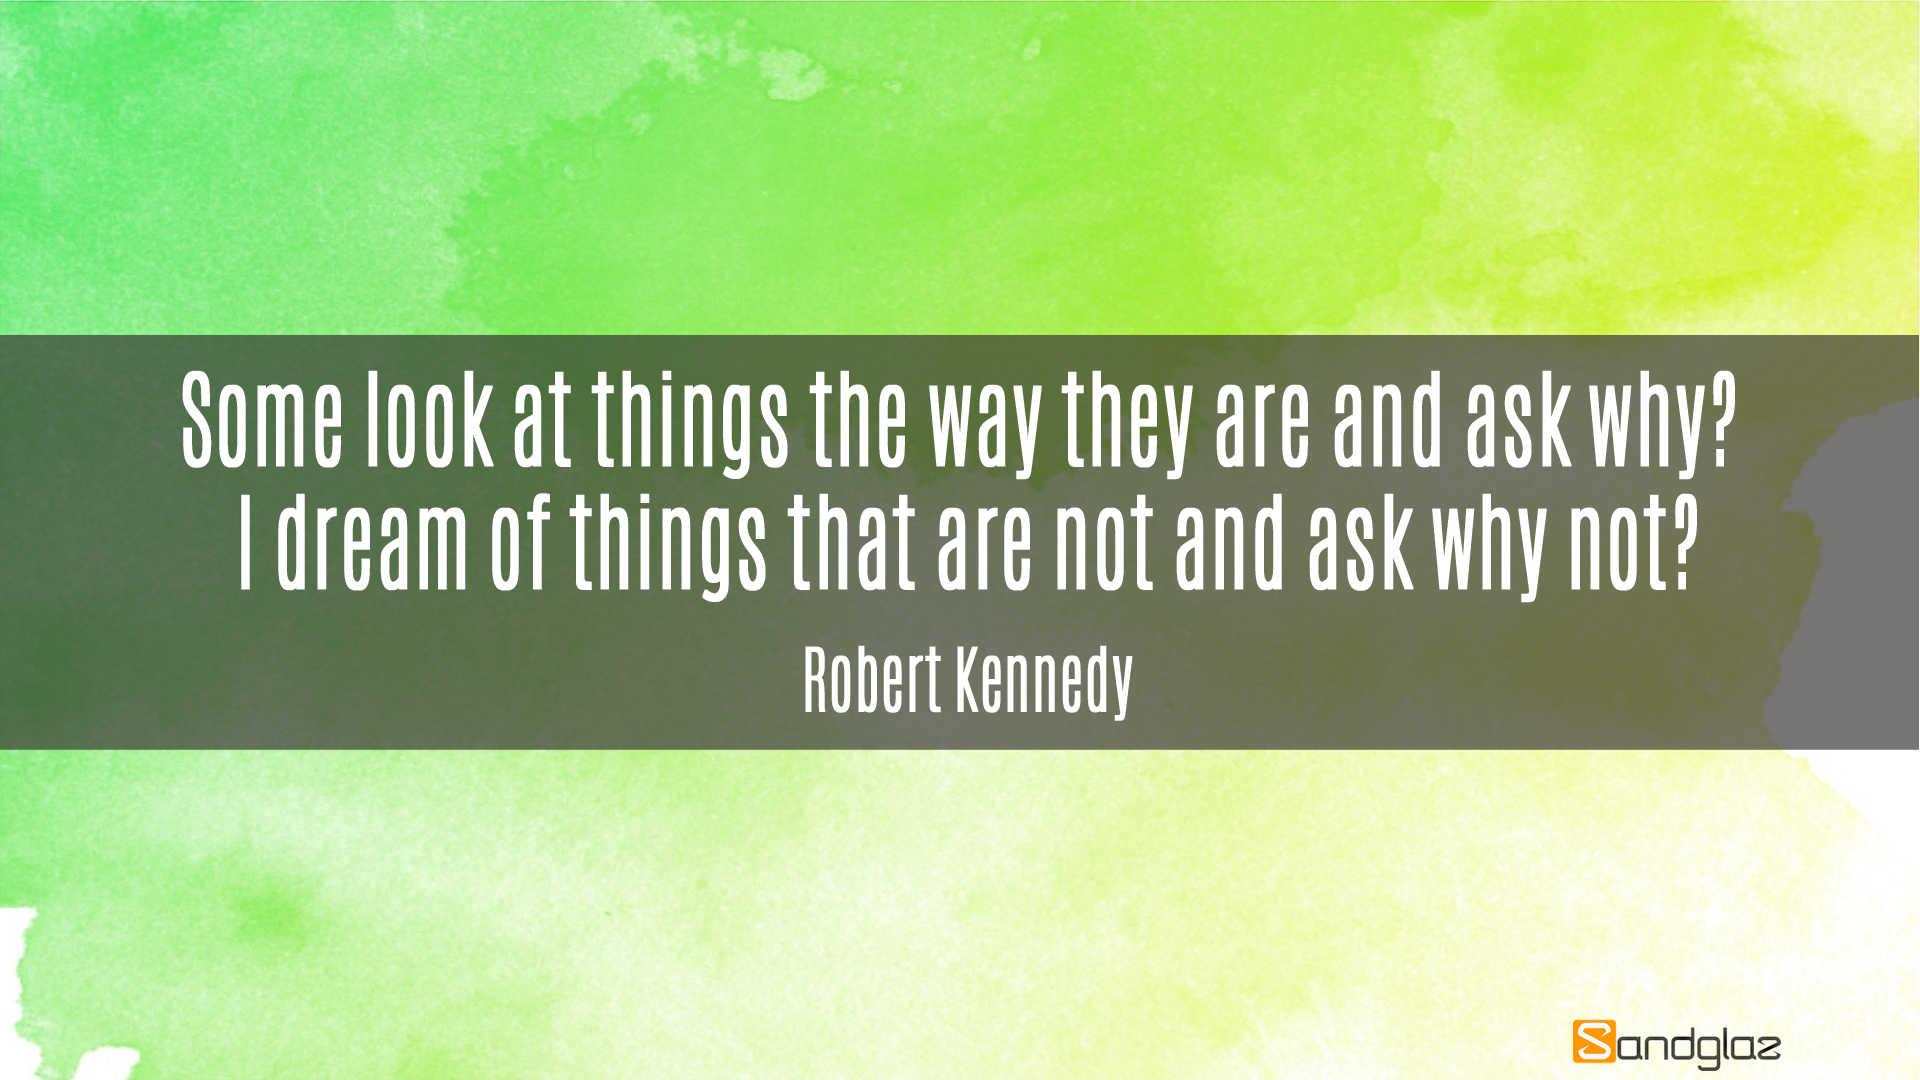 Robert Kennedy Quote Free Wallpaper Download